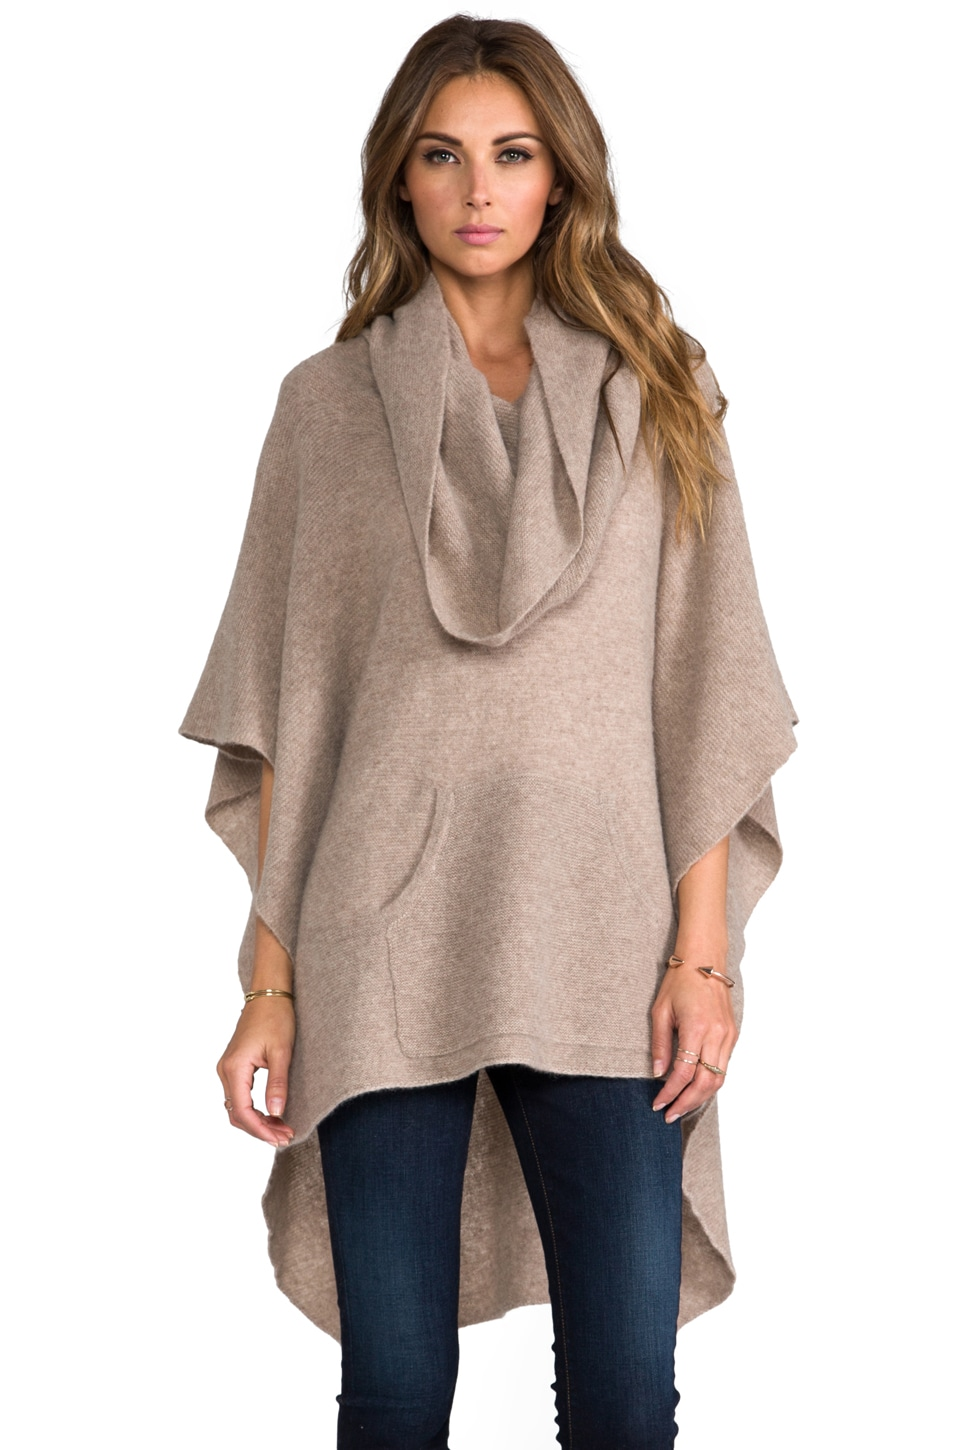 360CASHMERE Laurel Cashmere Poncho in Heather Camel